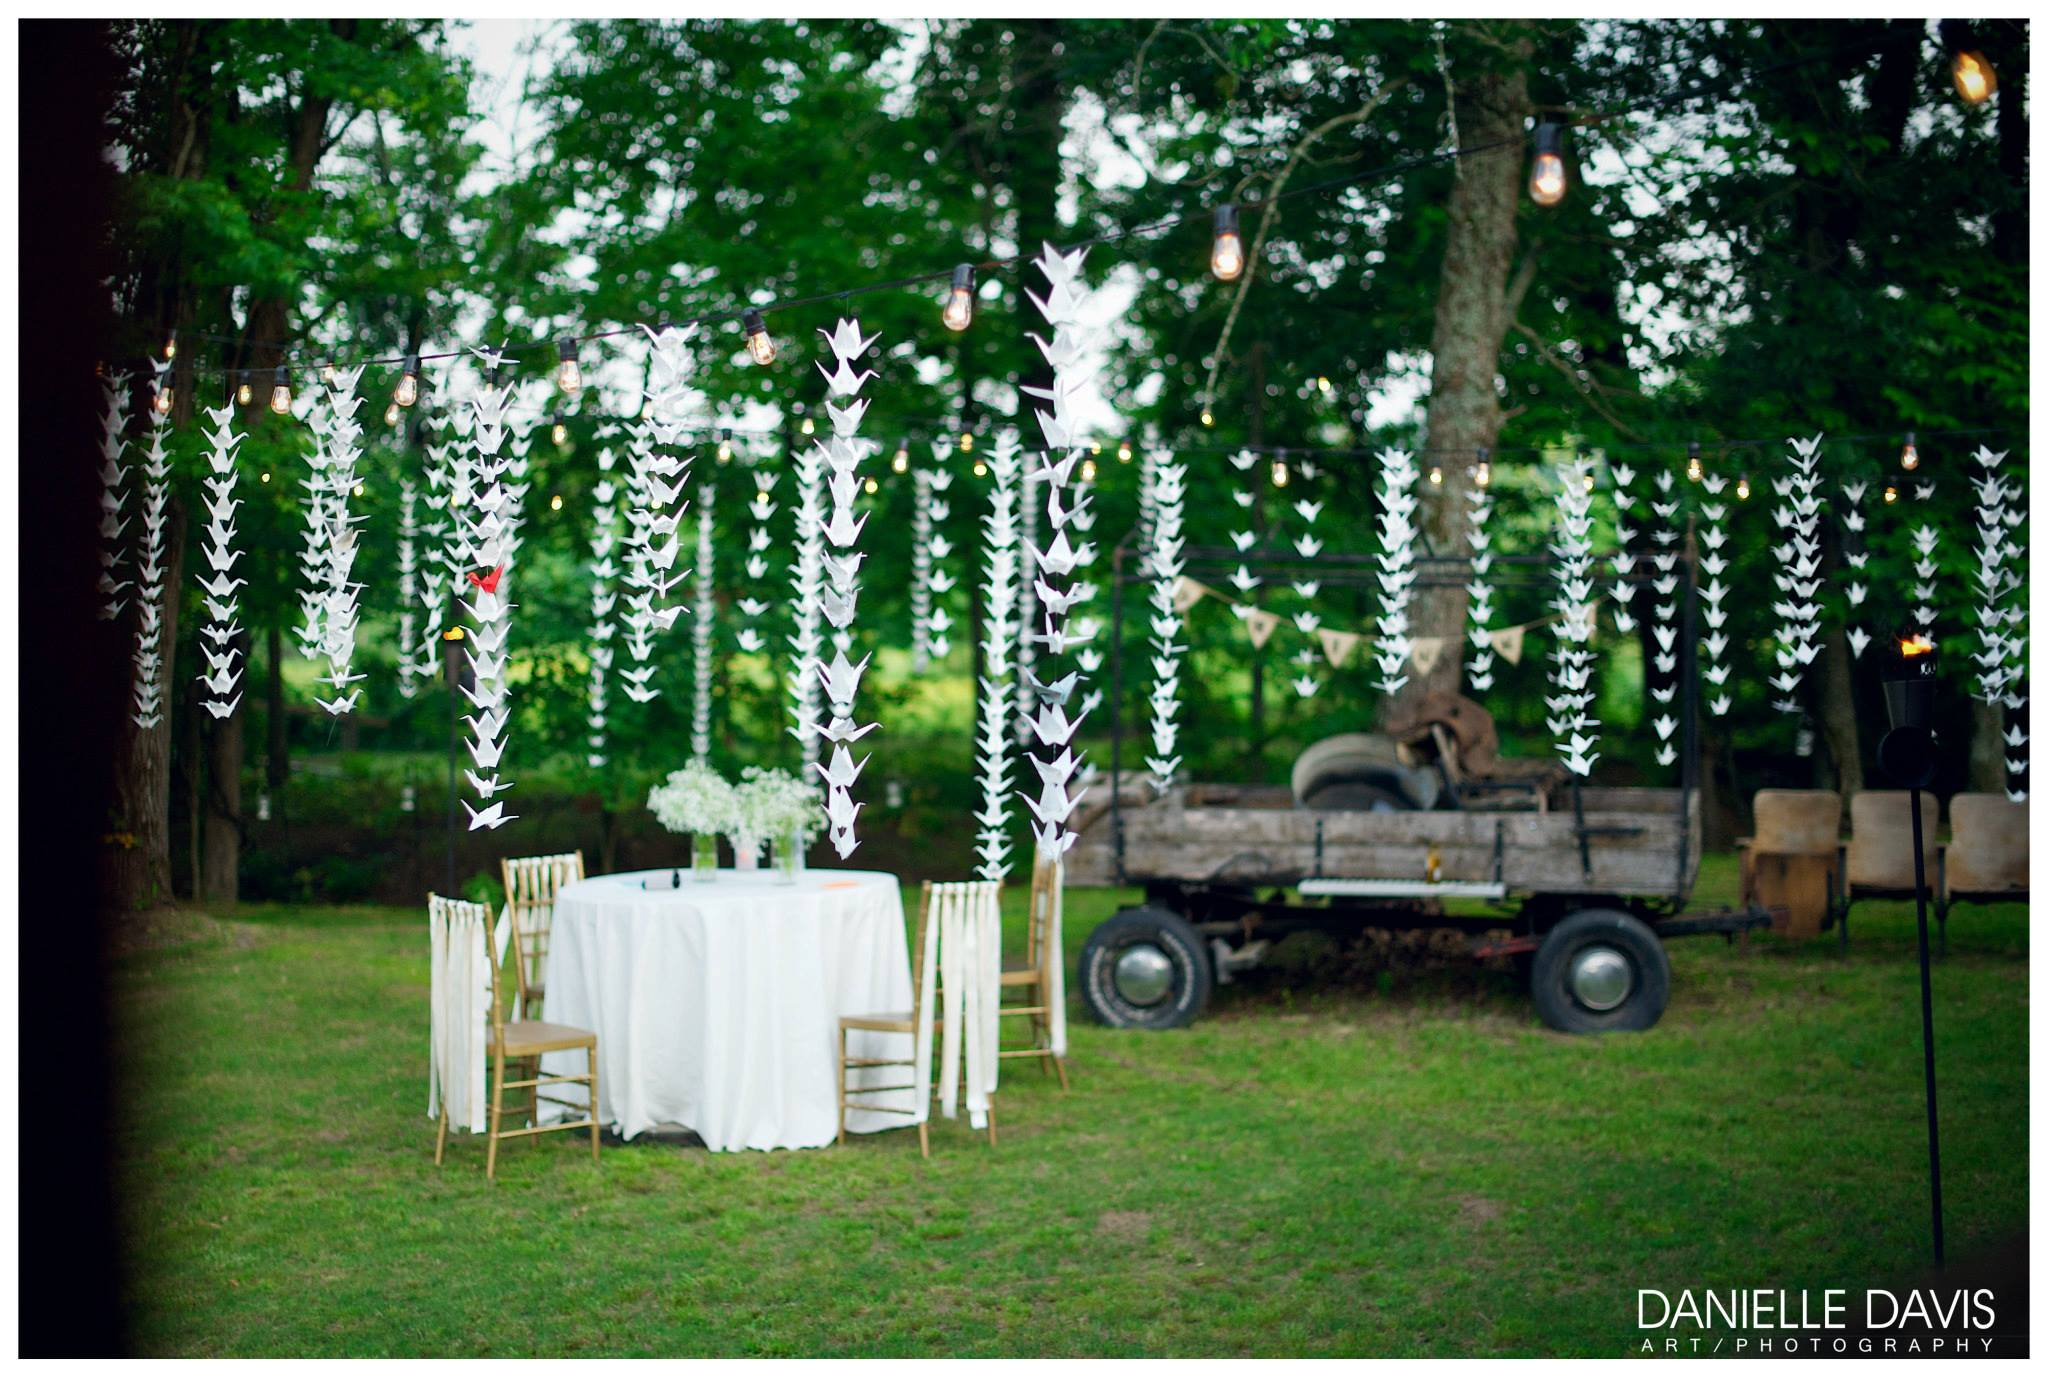 Danielle Davis Art/Photography  , from   Ani + Nathan  's wedding at The Barn